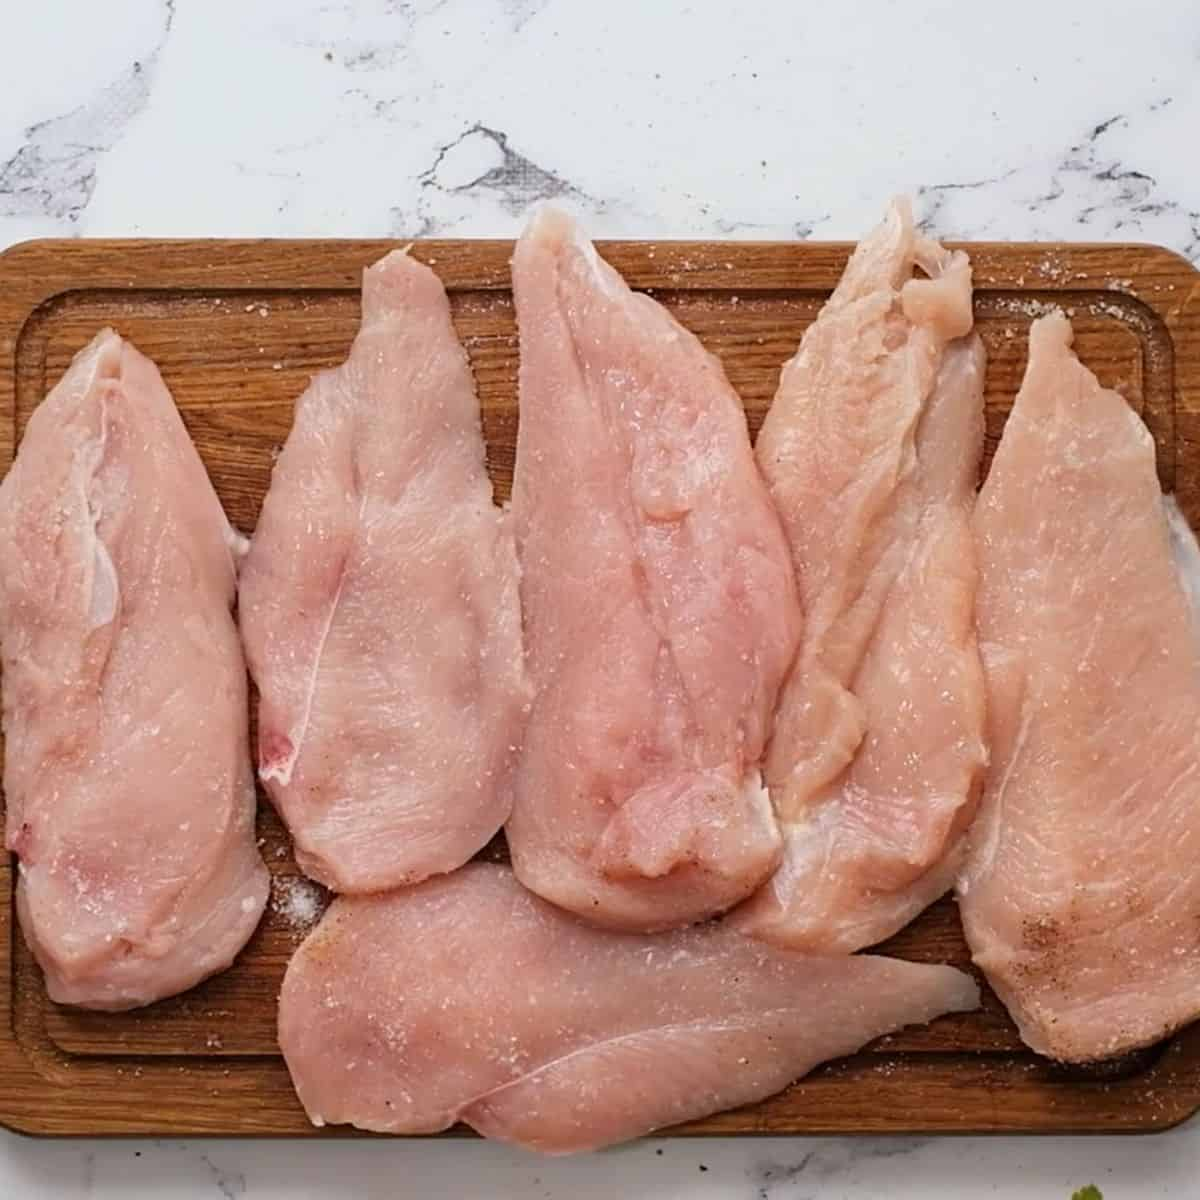 Chicken Breasts seasoned with salt and pepper.